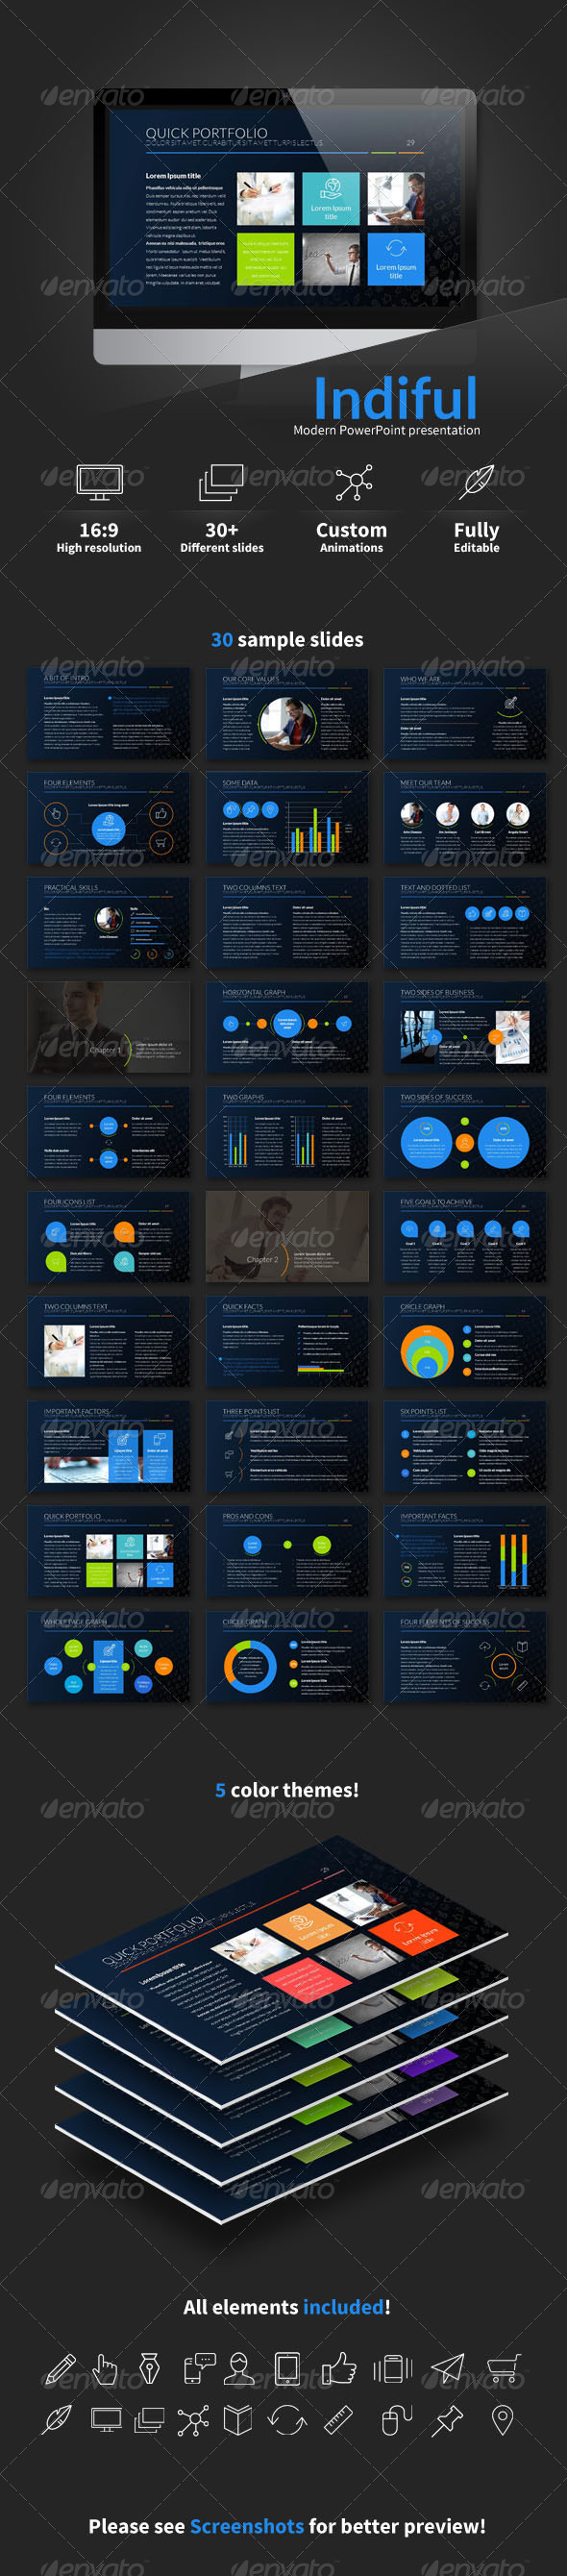 GraphicRiver Indiful PowerPoint presentation 7097199